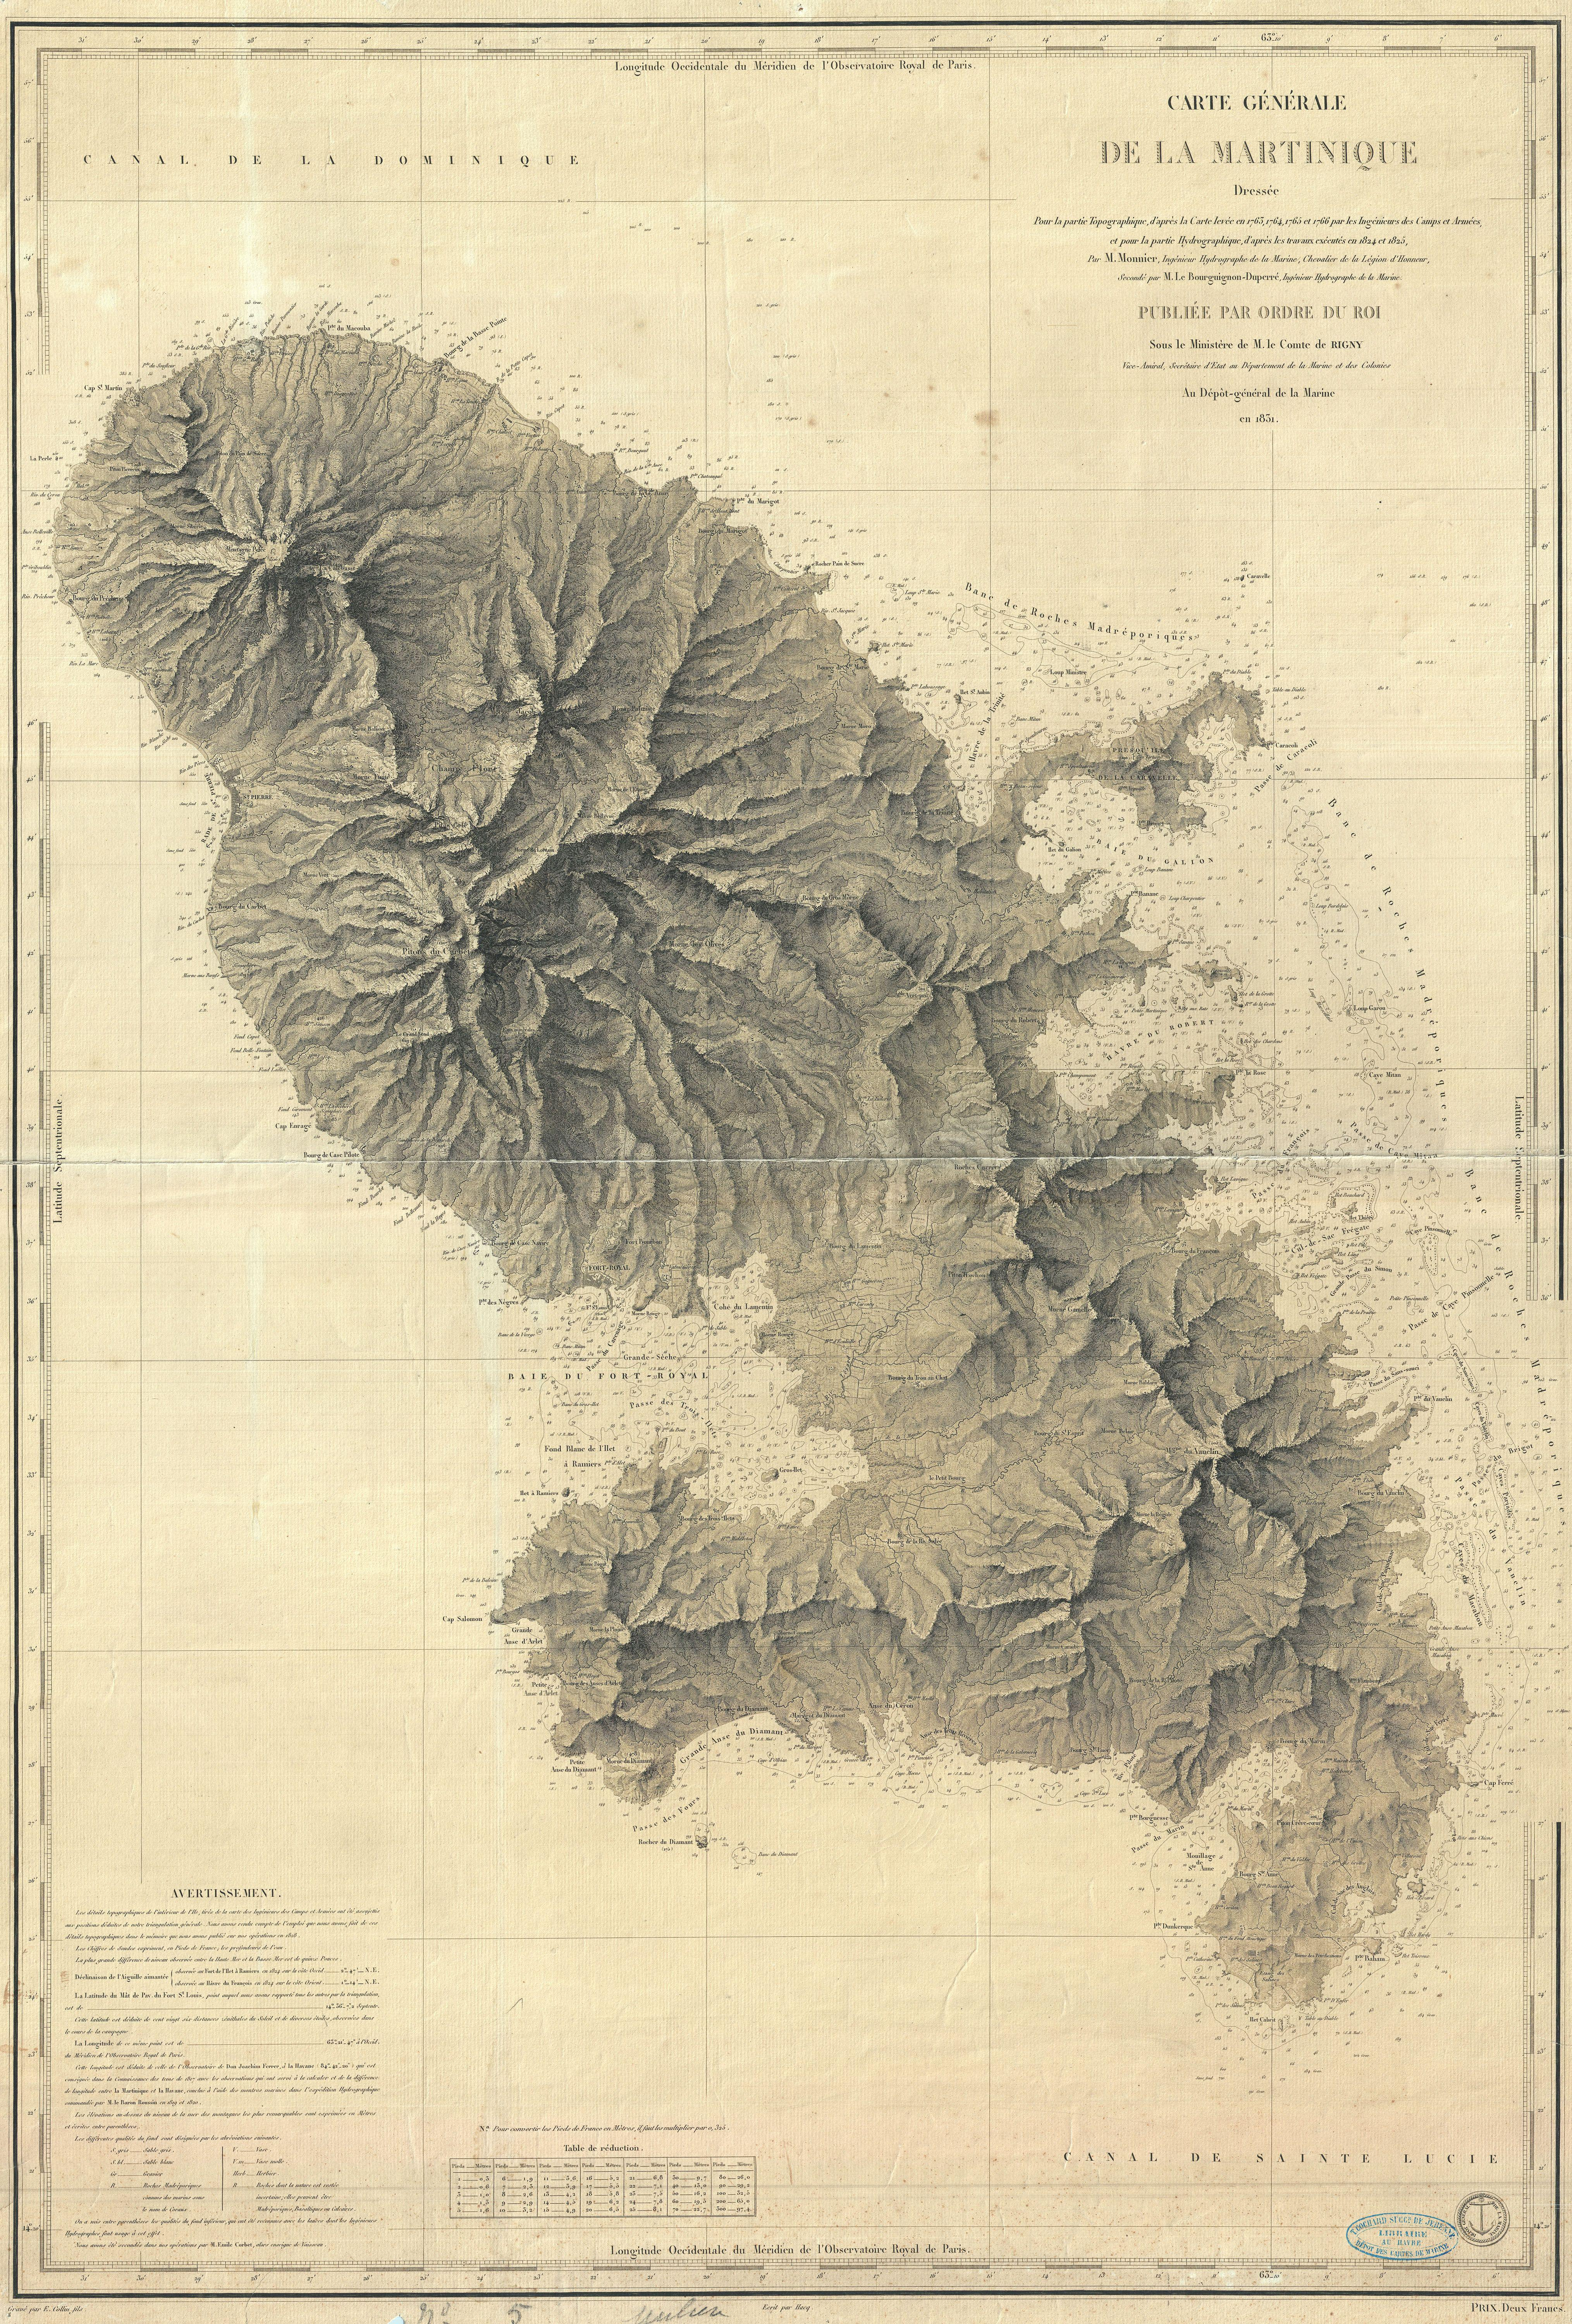 A beautiful French nautical chart or map of Martinique issued in 1831 by the Depot de la Marine. Offers sumptuous detail both inland at sea. There are countess depth soundings as well as notes on undersea features such as banks and shoals. Equally impressive detail inland with beautifully engraved topography throughout. Today Martinique, with its French Caribbean culture, lush rainforests, and stunning beaches is considered a jewel of the Caribbean. Issued by M. Monnier and M. Le Bourguignon-Duperre for the Depot-general de la Marine in 1831.